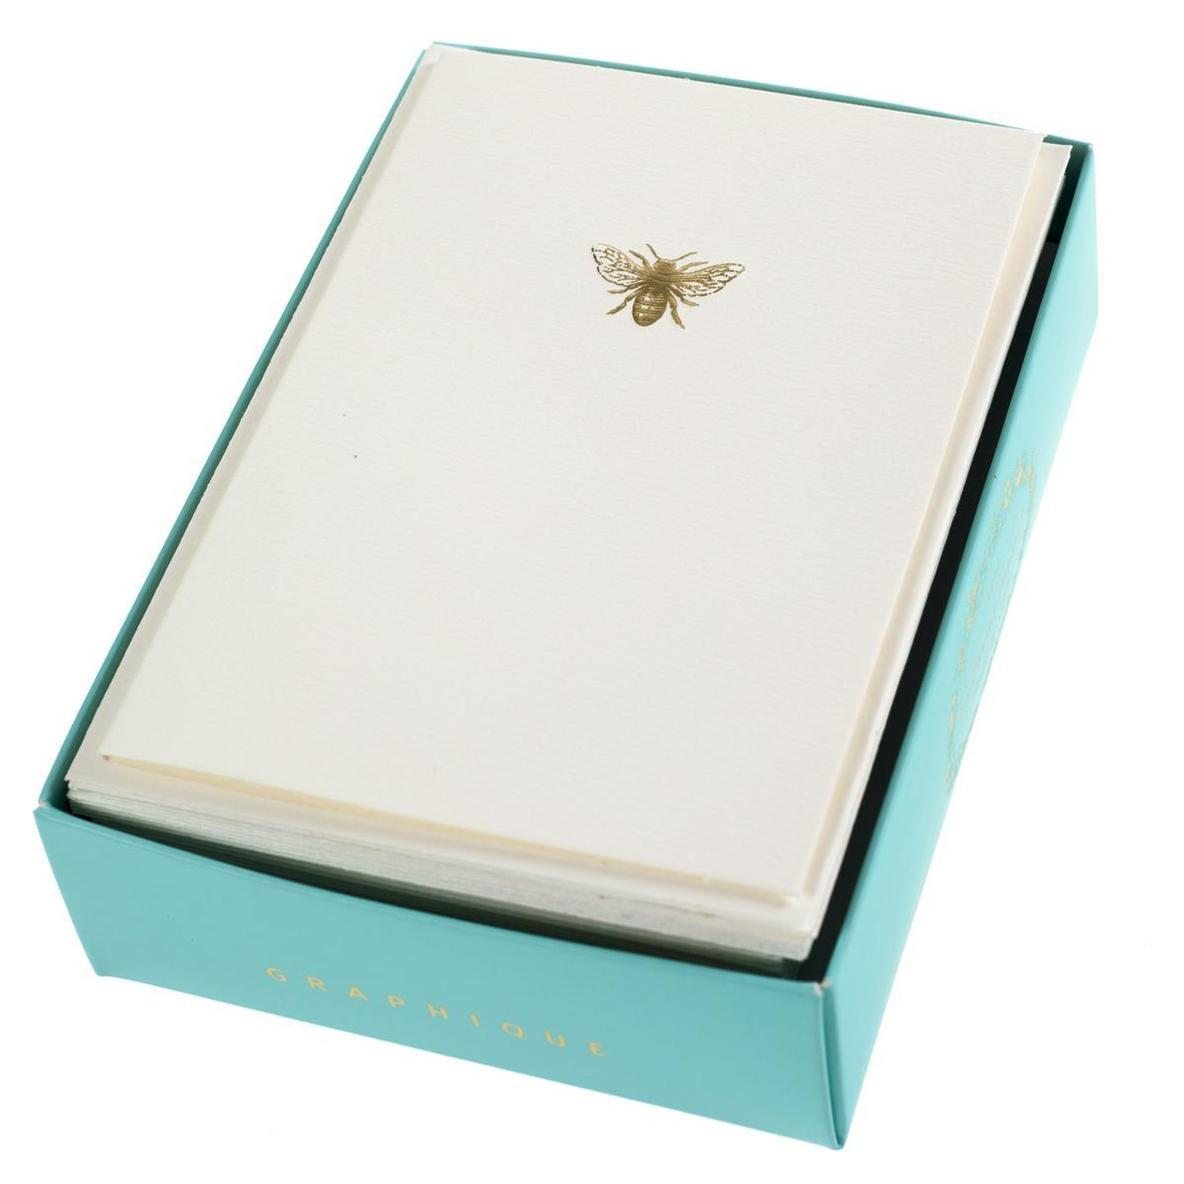 Bee La Petite Presse Boxed Set